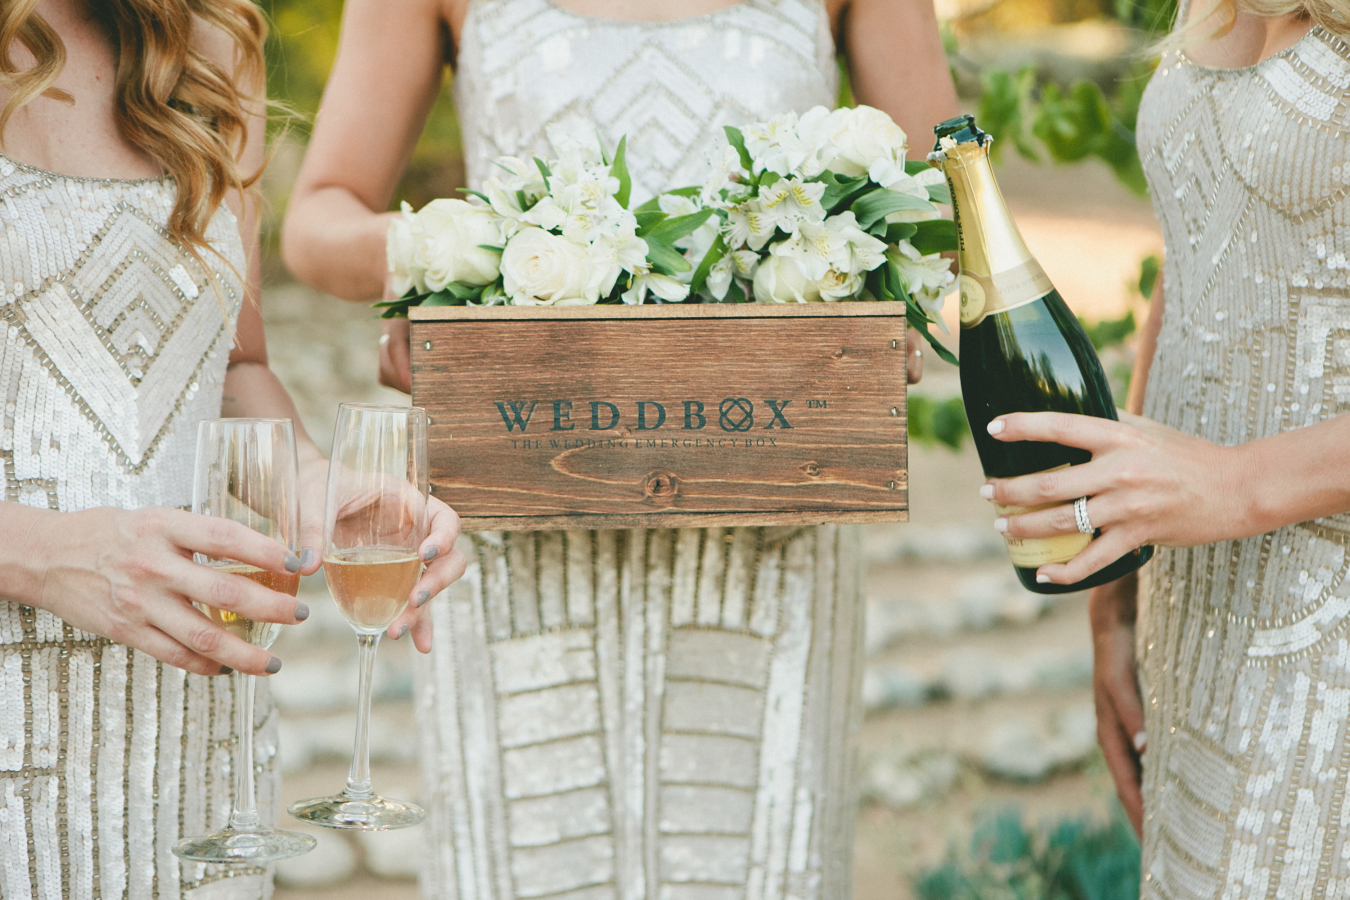 wedding-emergency-kit-box http://itgirlweddings.com/what-to-put-in-your-bridal-emergency-kit/